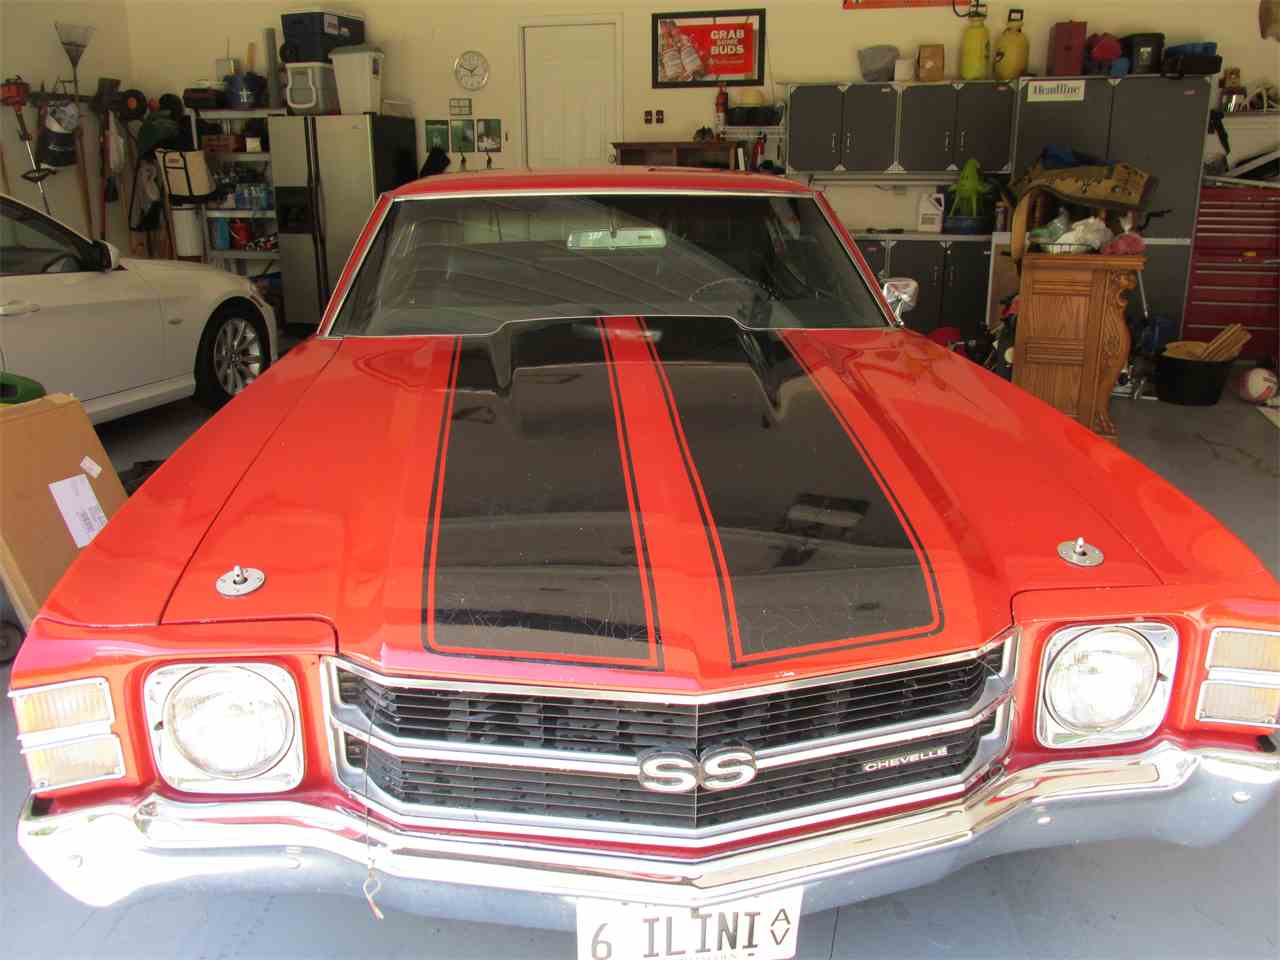 Large Picture of 1971 Chevrolet Chevelle SS located in Illinois - $26,500.00 Offered by a Private Seller - JRT1